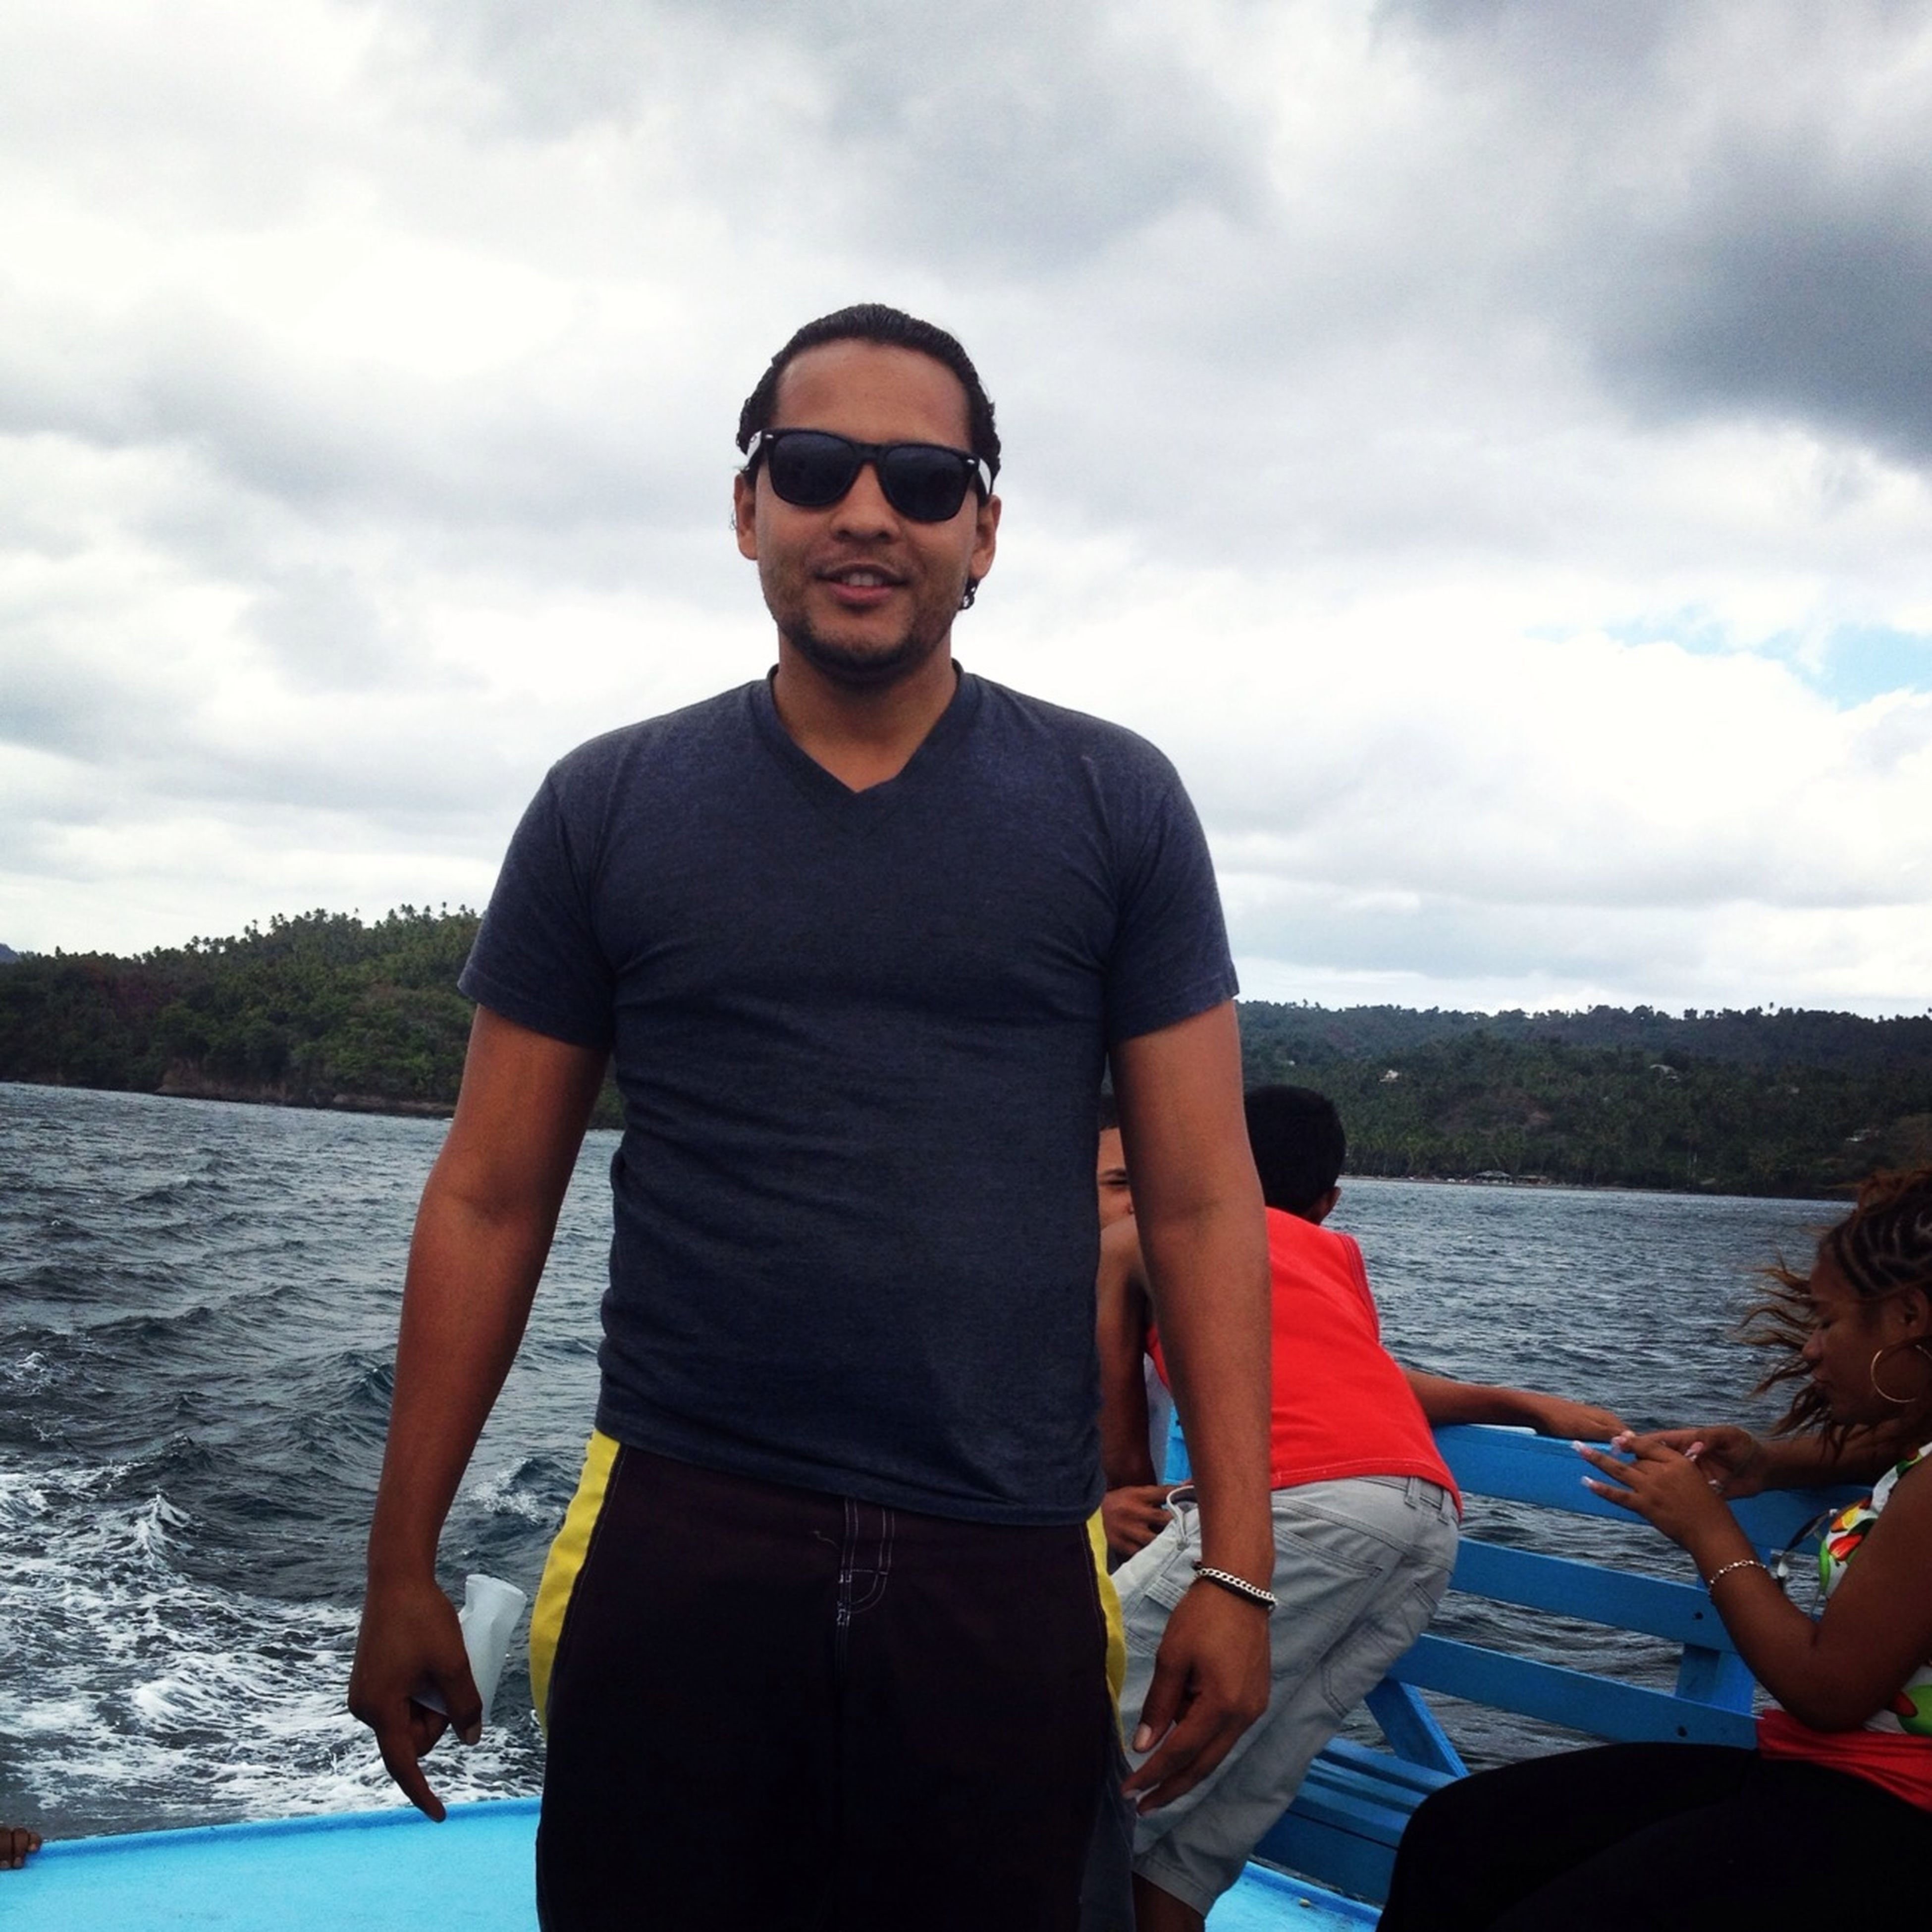 lifestyles, looking at camera, portrait, sky, person, casual clothing, leisure activity, young men, cloud - sky, sunglasses, water, front view, young adult, standing, three quarter length, smiling, waist up, cloud